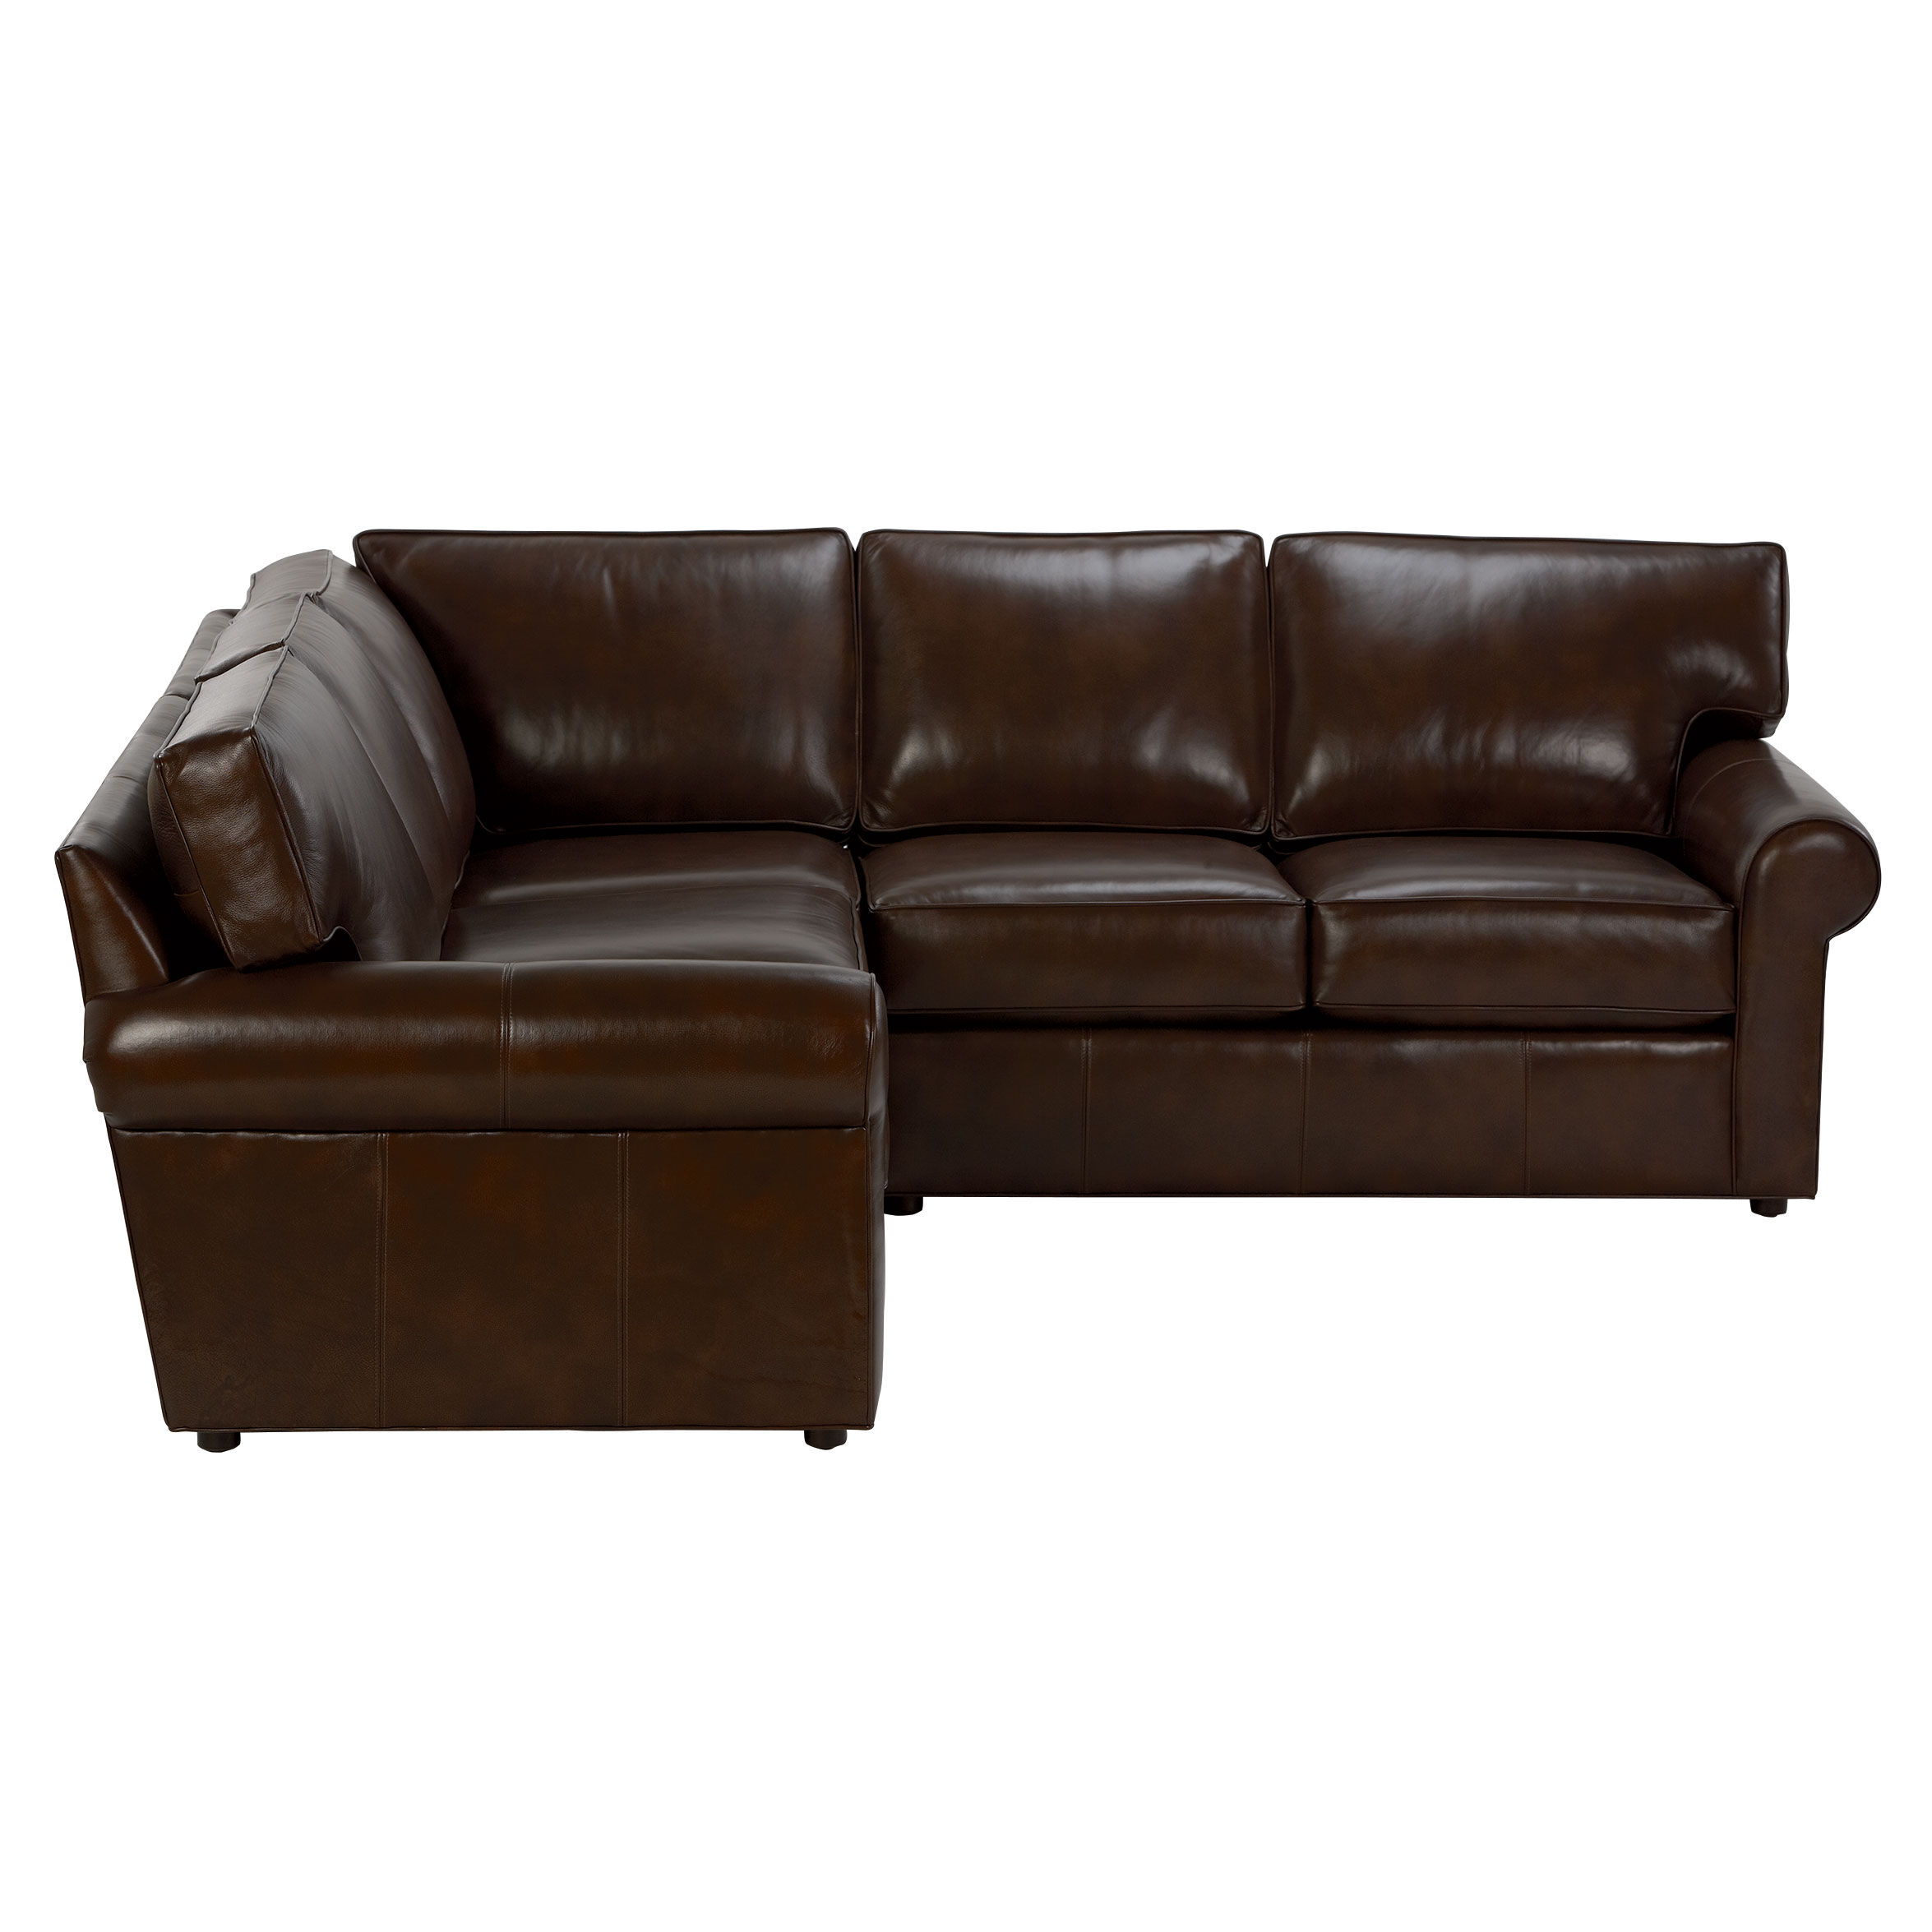 Retreat Roll-Arm Leather Sectional   large  sc 1 st  Ethan Allen : leather sectional - Sectionals, Sofas & Couches